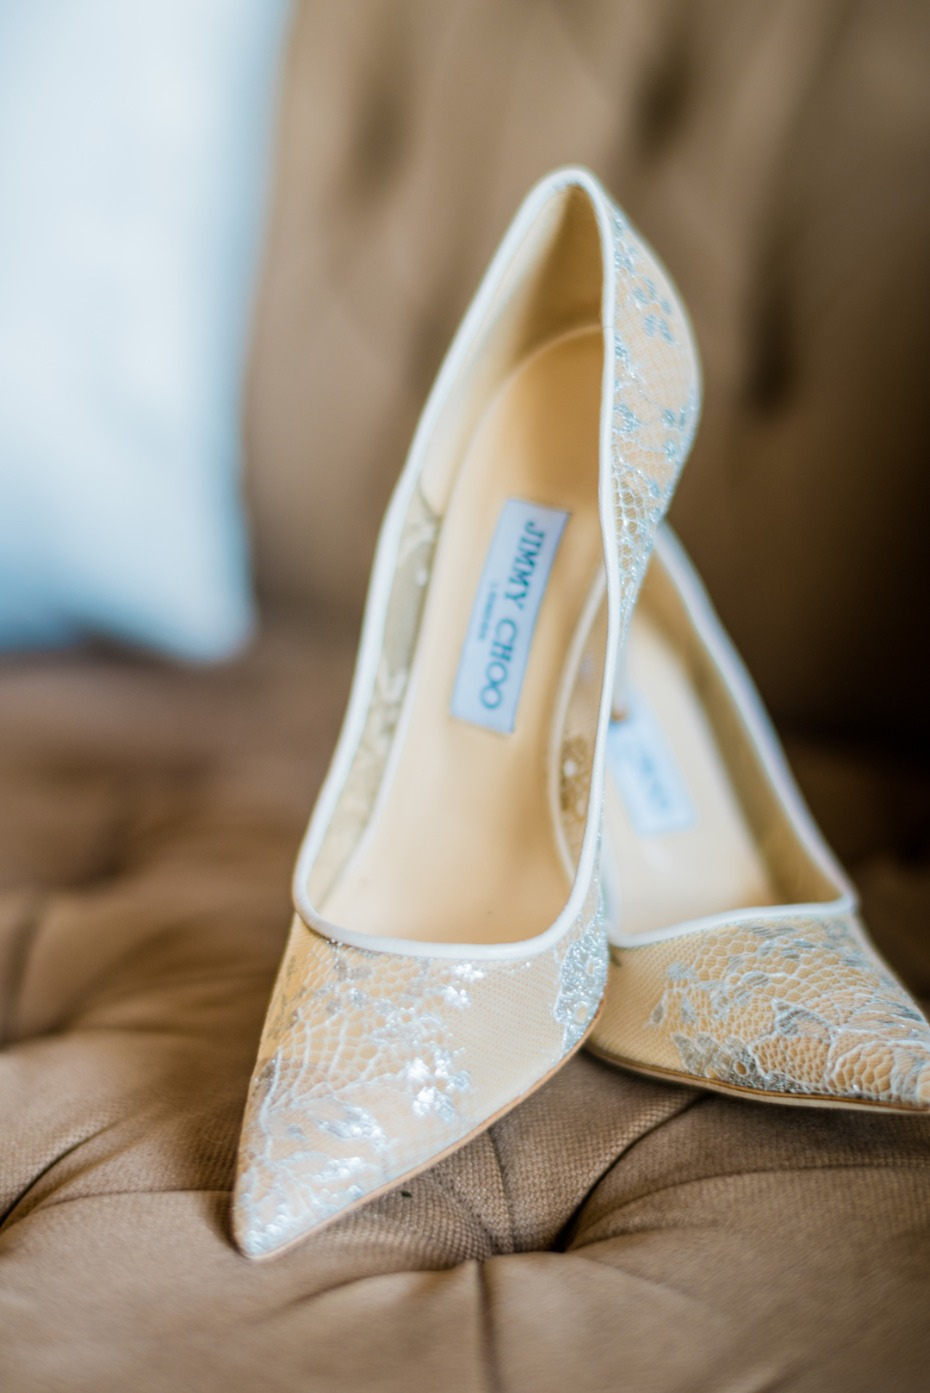 Lace Jimmy Choo heels